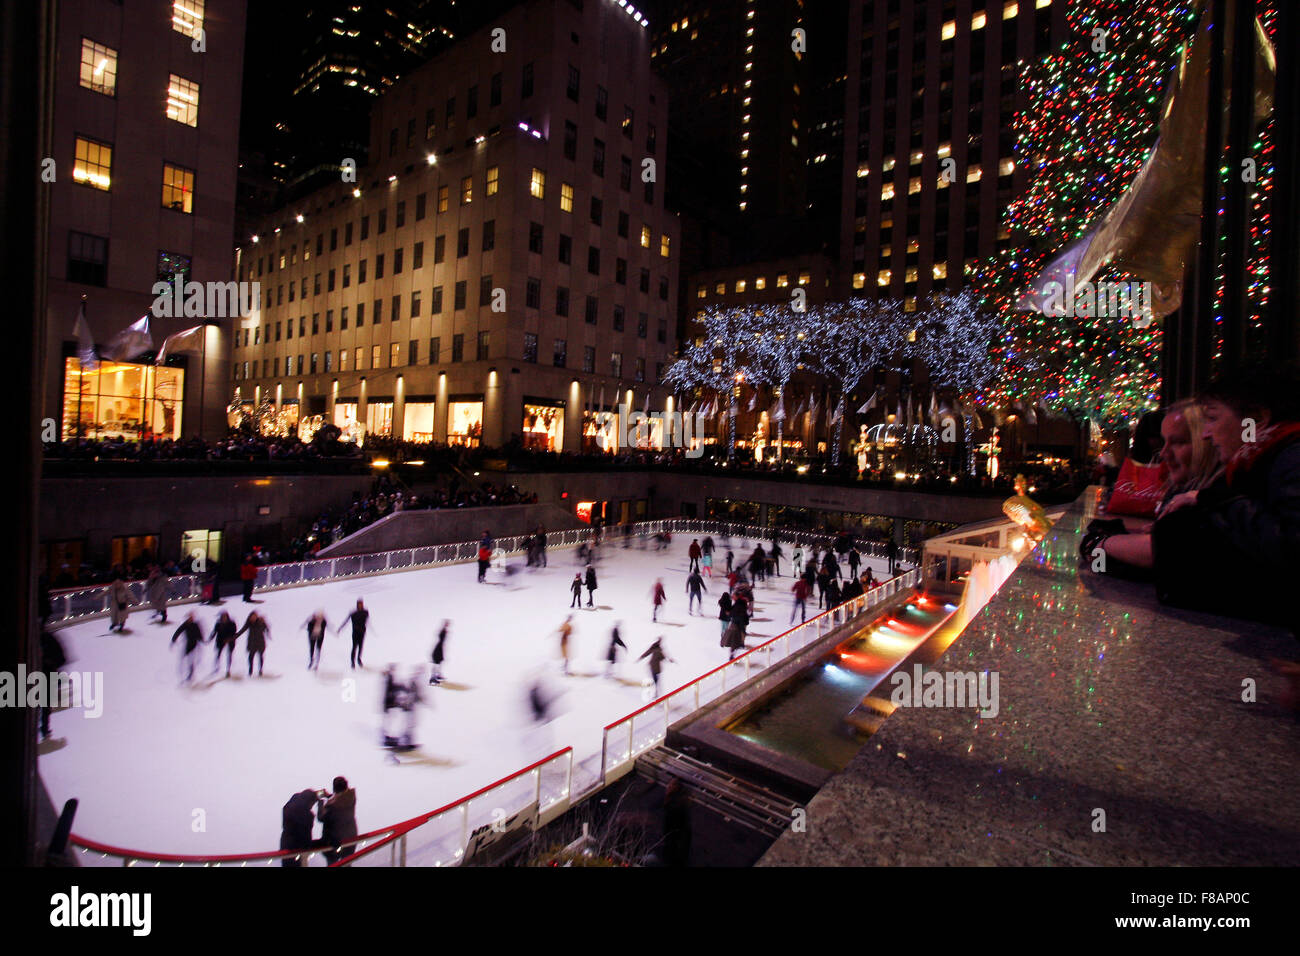 New York, New York, USA. 07th Dec, 2015. Skaters enjoy the rink in New York City''s Rockefeller Center under - Stock Image